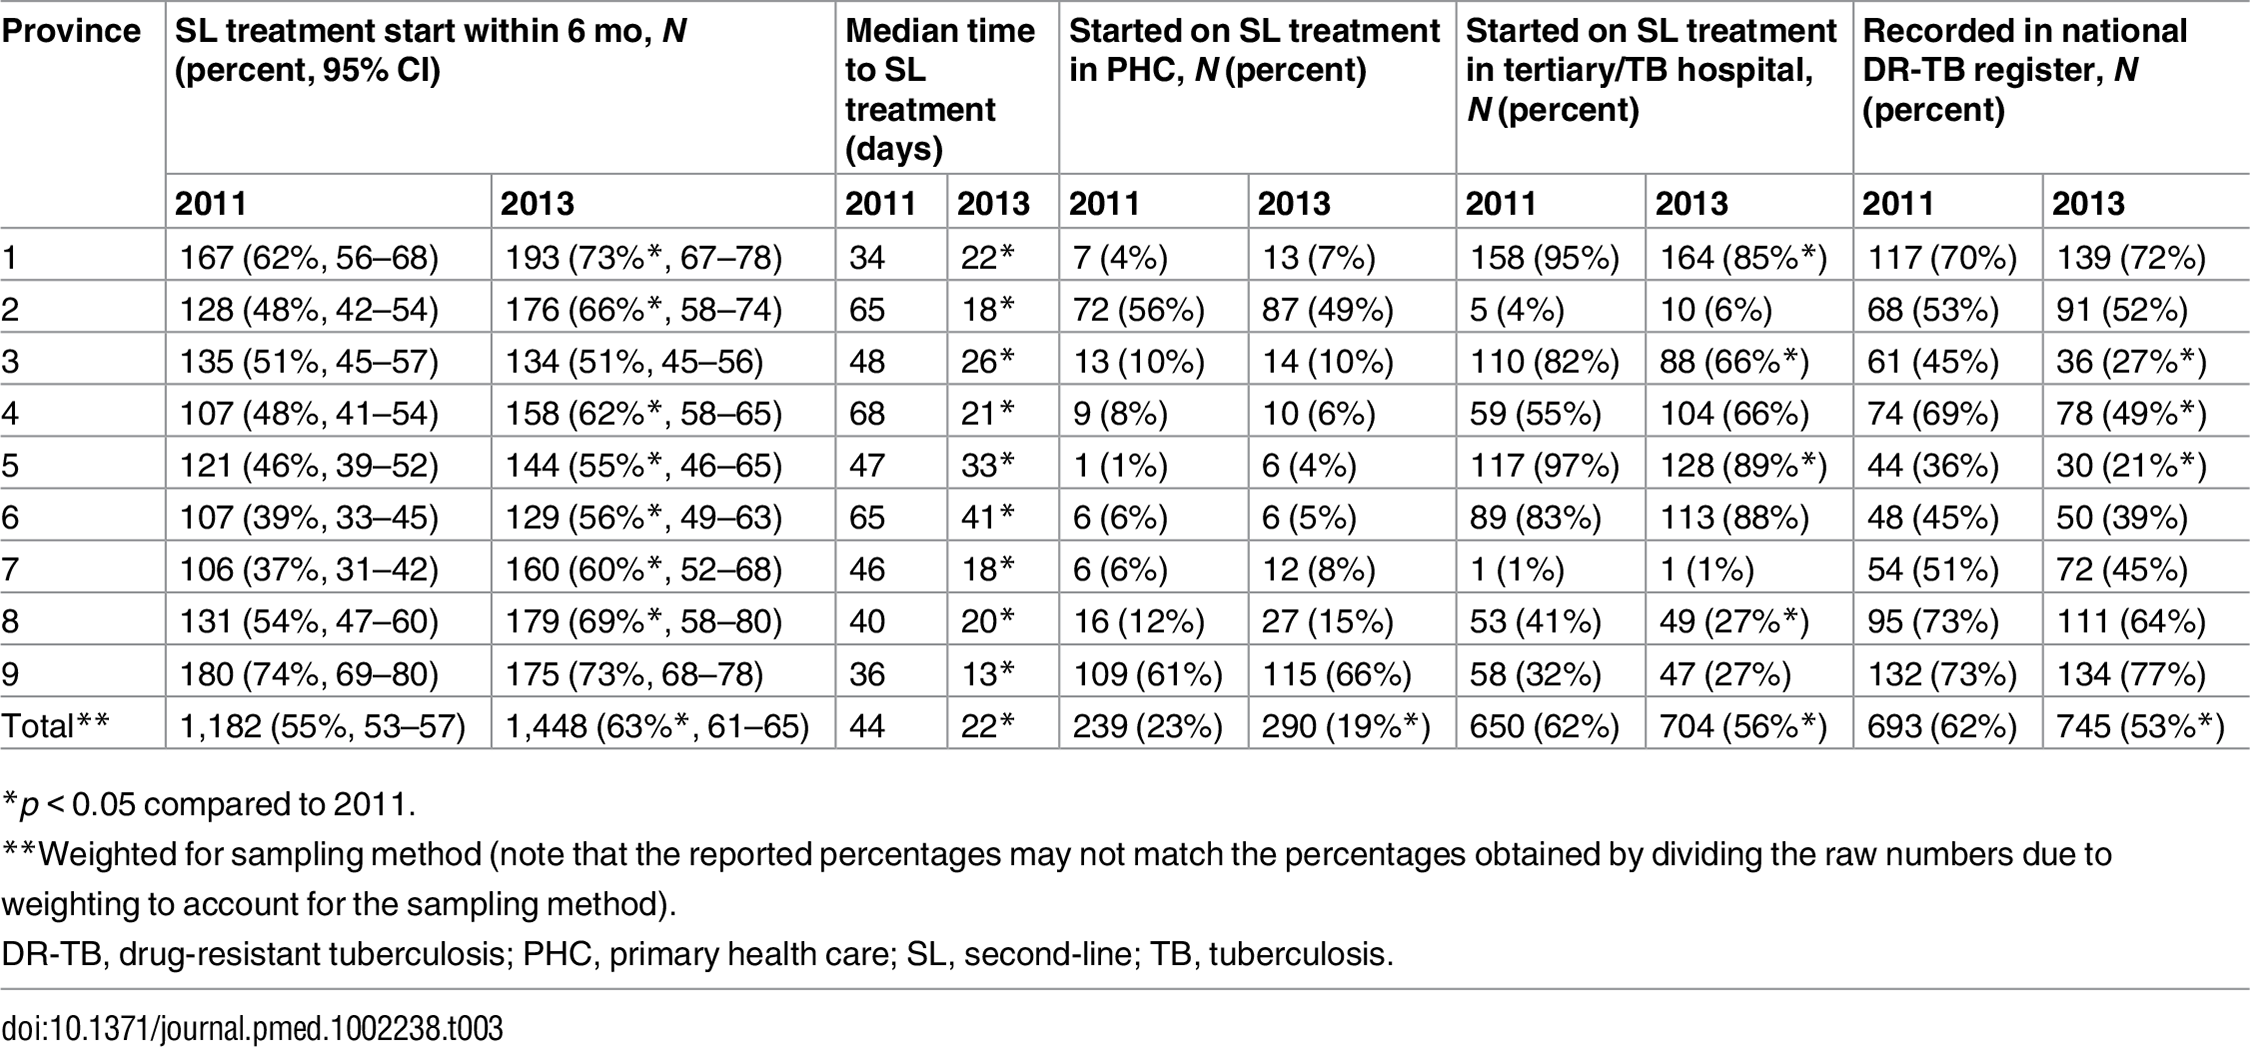 Percentage of patients who initiated treatment, time to treatment, site of treatment initiation, and recording in national drug-resistant tuberculosis register by cohort and province (new rifampicin-resistant tuberculosis patients).